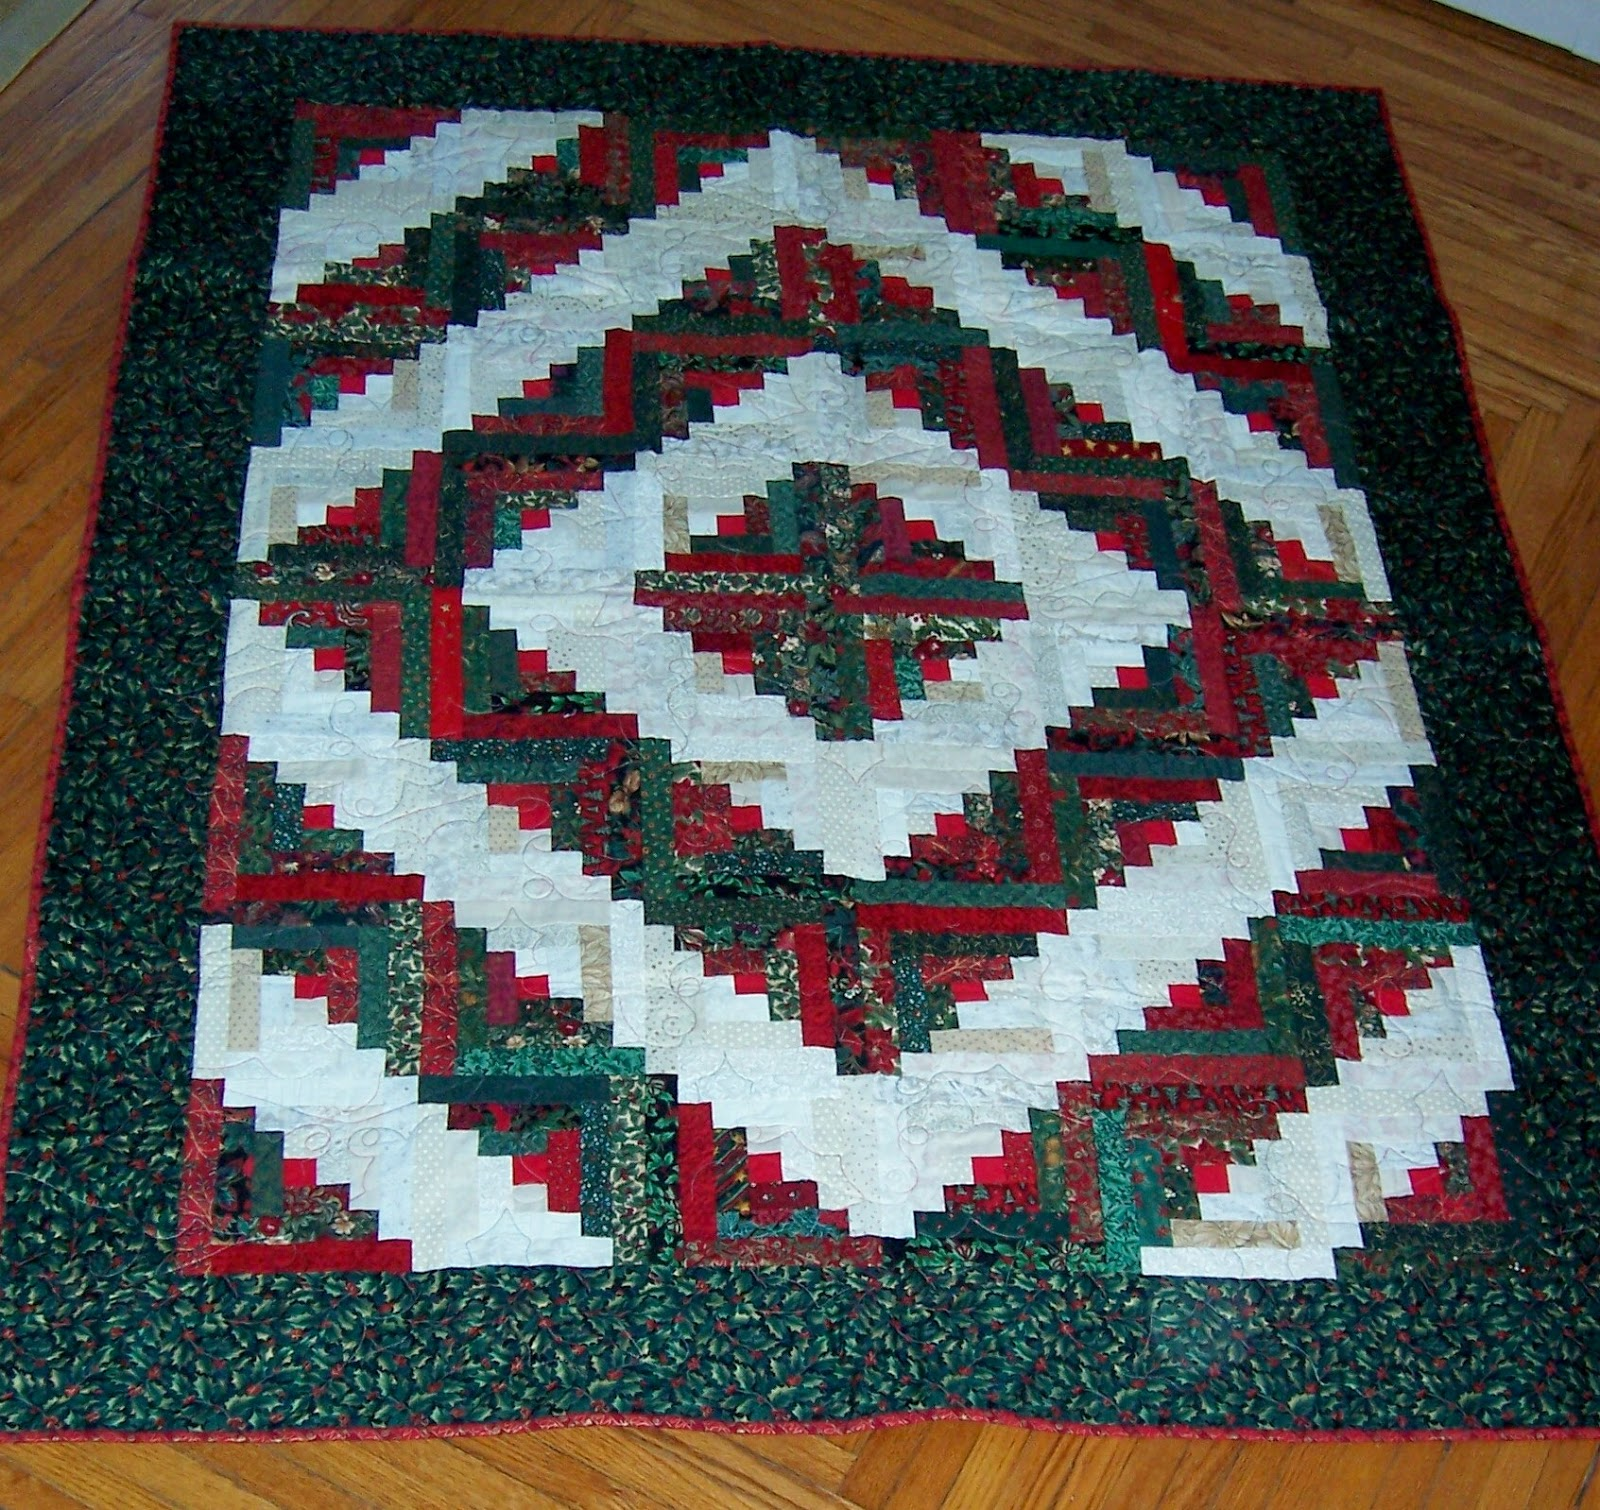 Quilting Patterns For Christmas : Quilting on Main Street: Christmas in July - Part 1